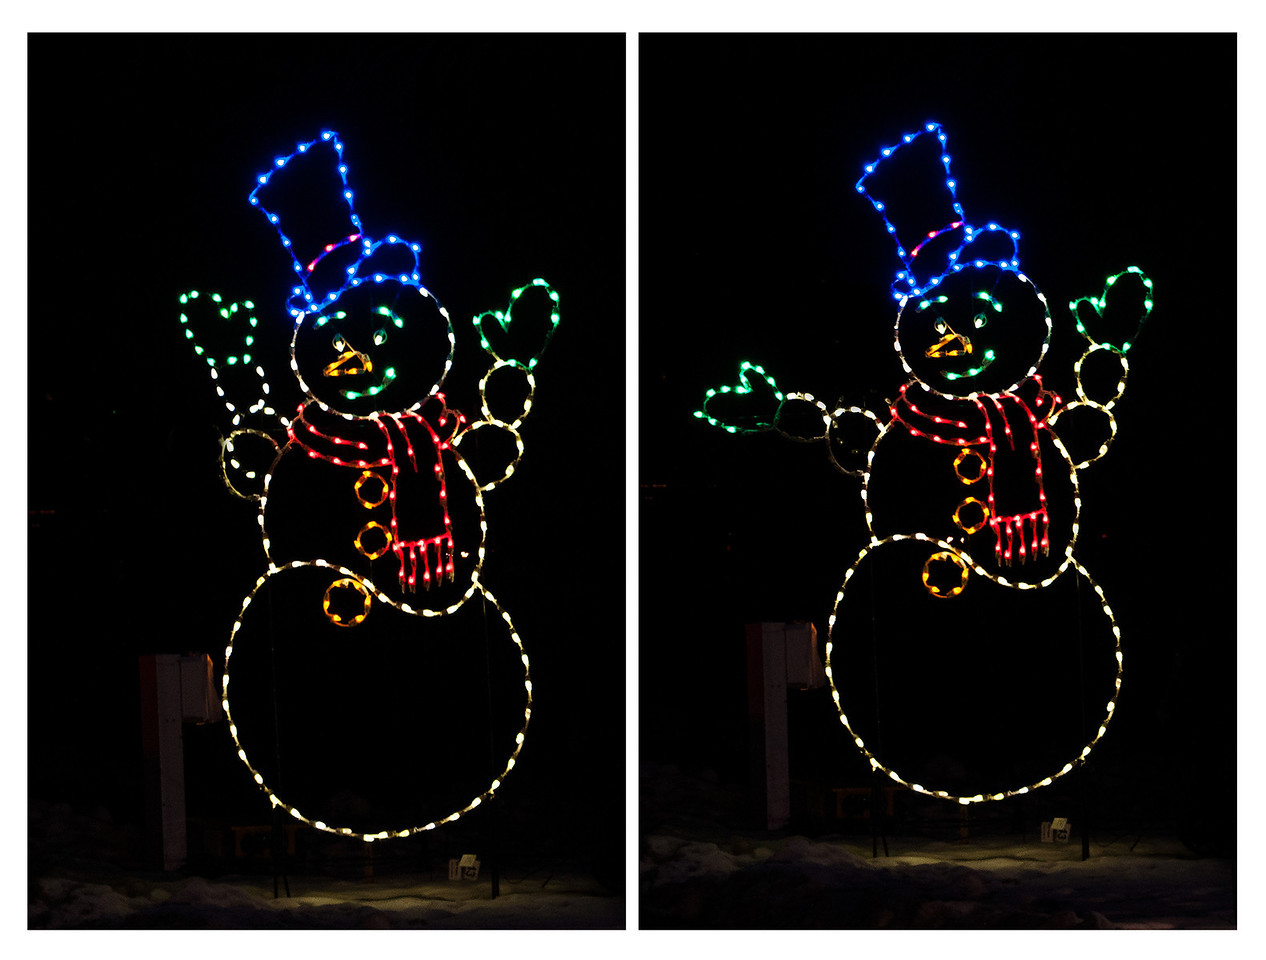 Here's Frosty the Snowman waving at us.  (These are different photos showing the two positions of the arm which made it look animated.)